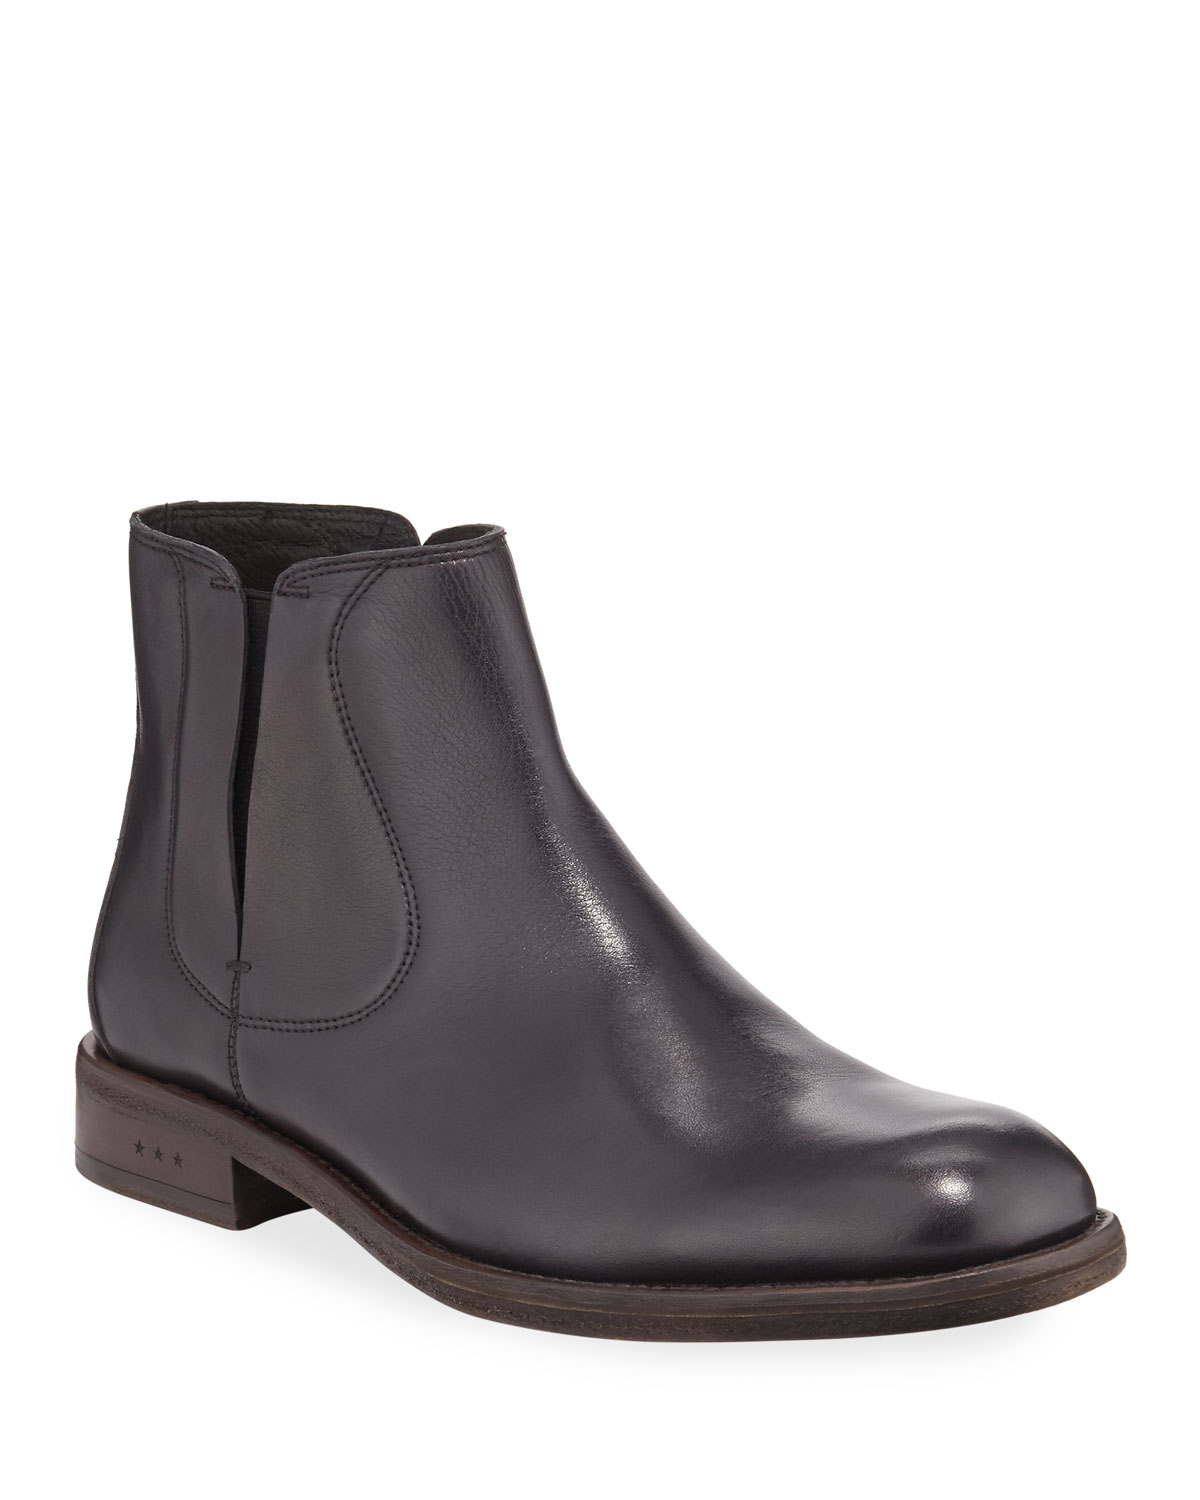 Men's Waverly Covered Chelsea Boots